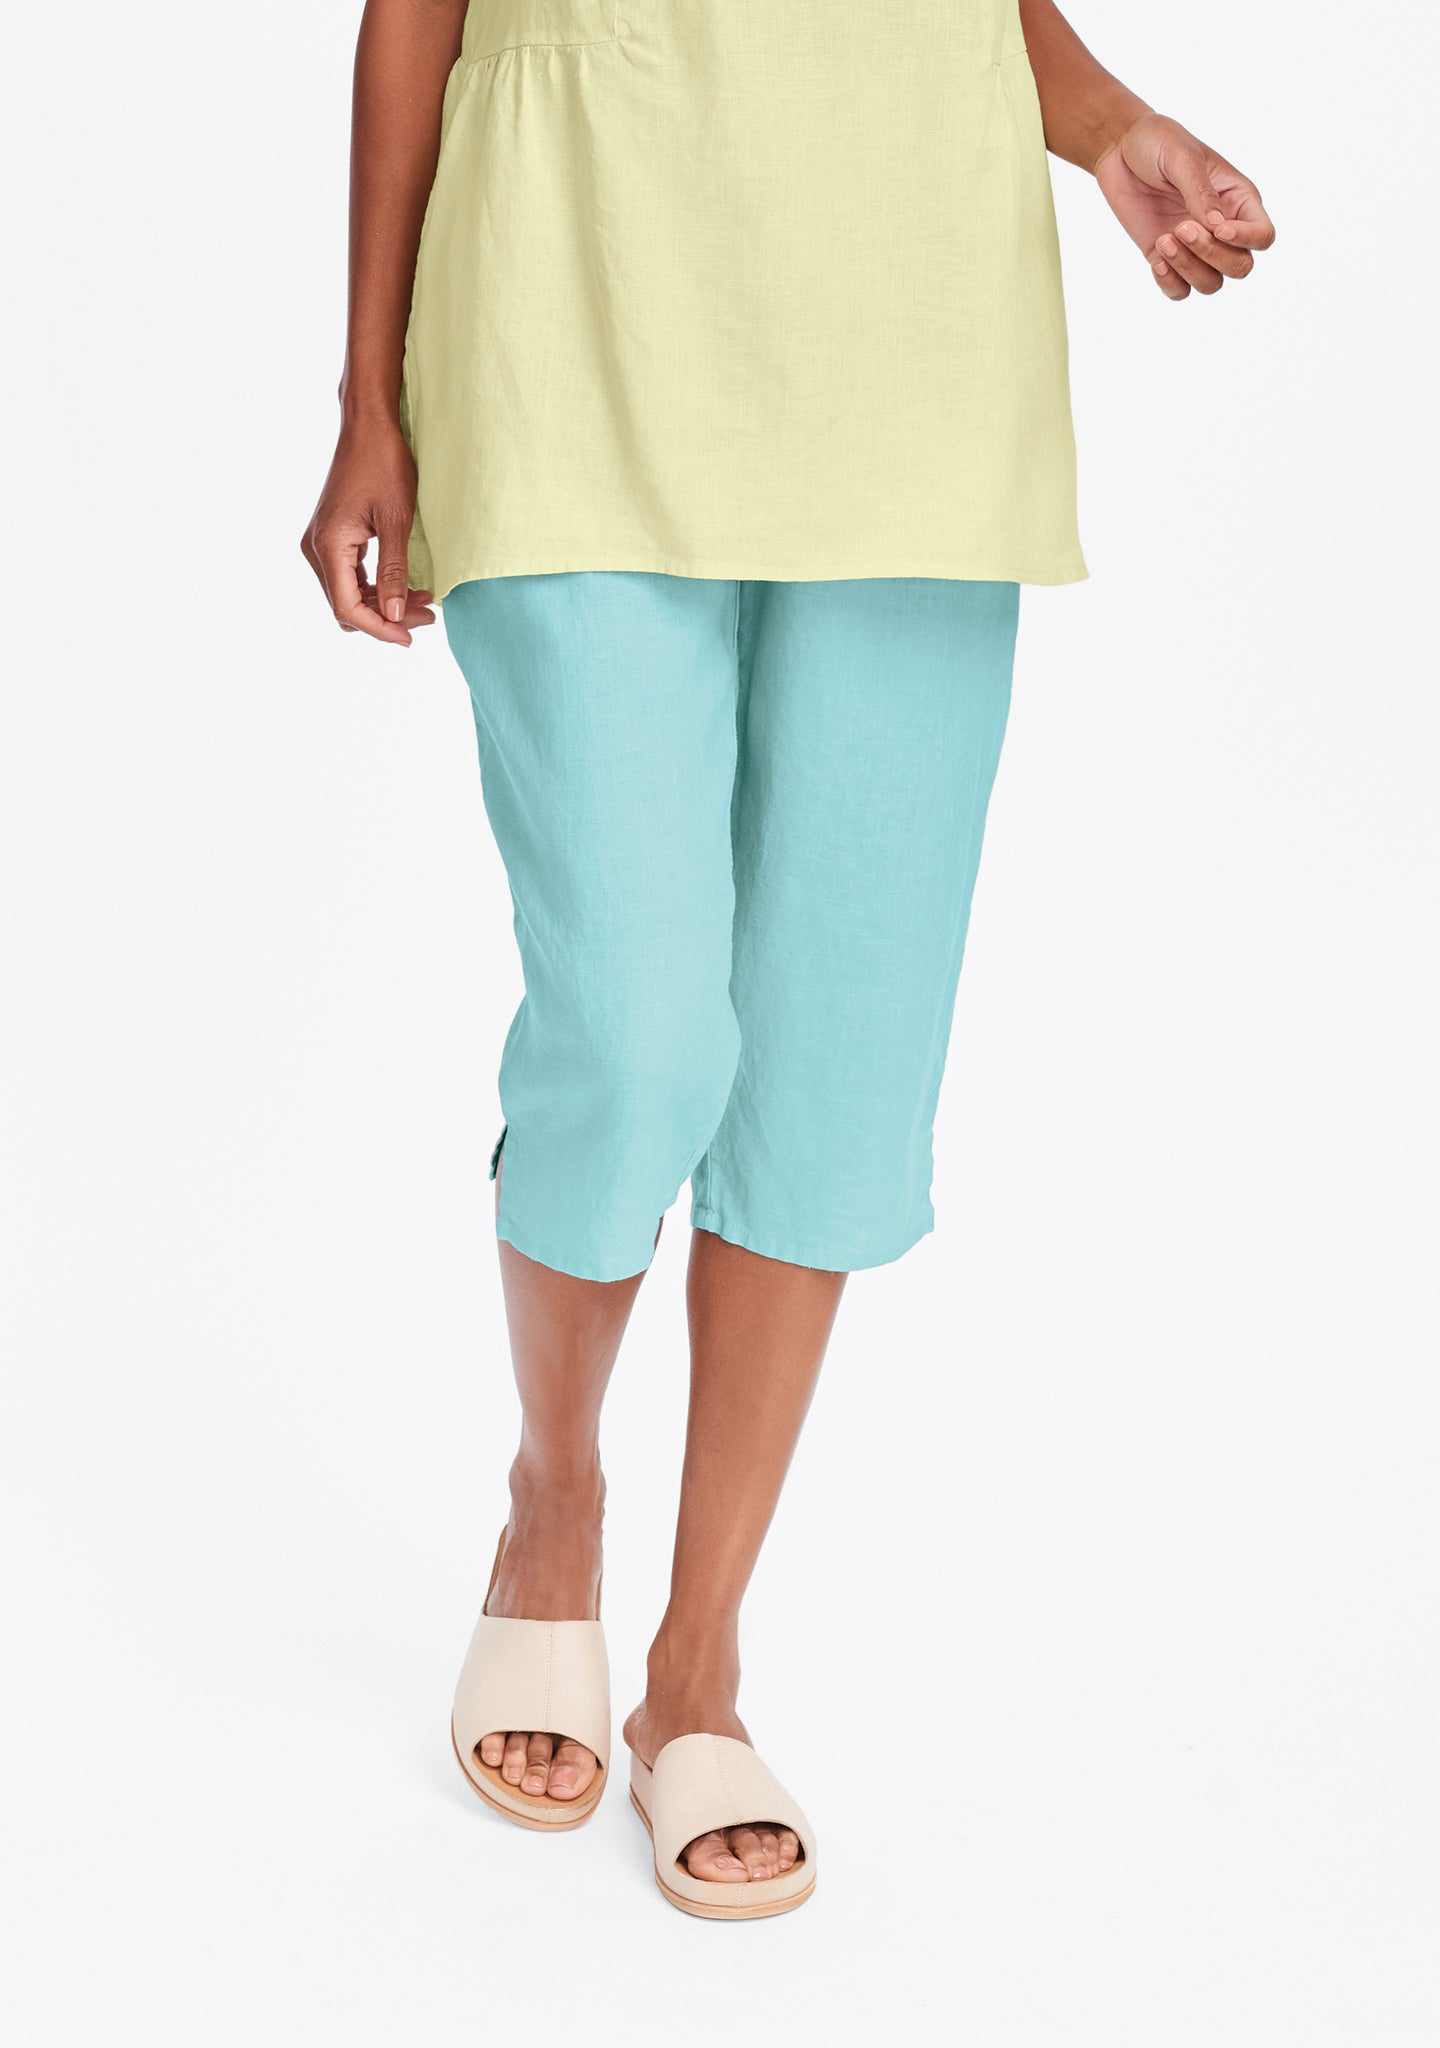 pedal pant linen crop pants blue